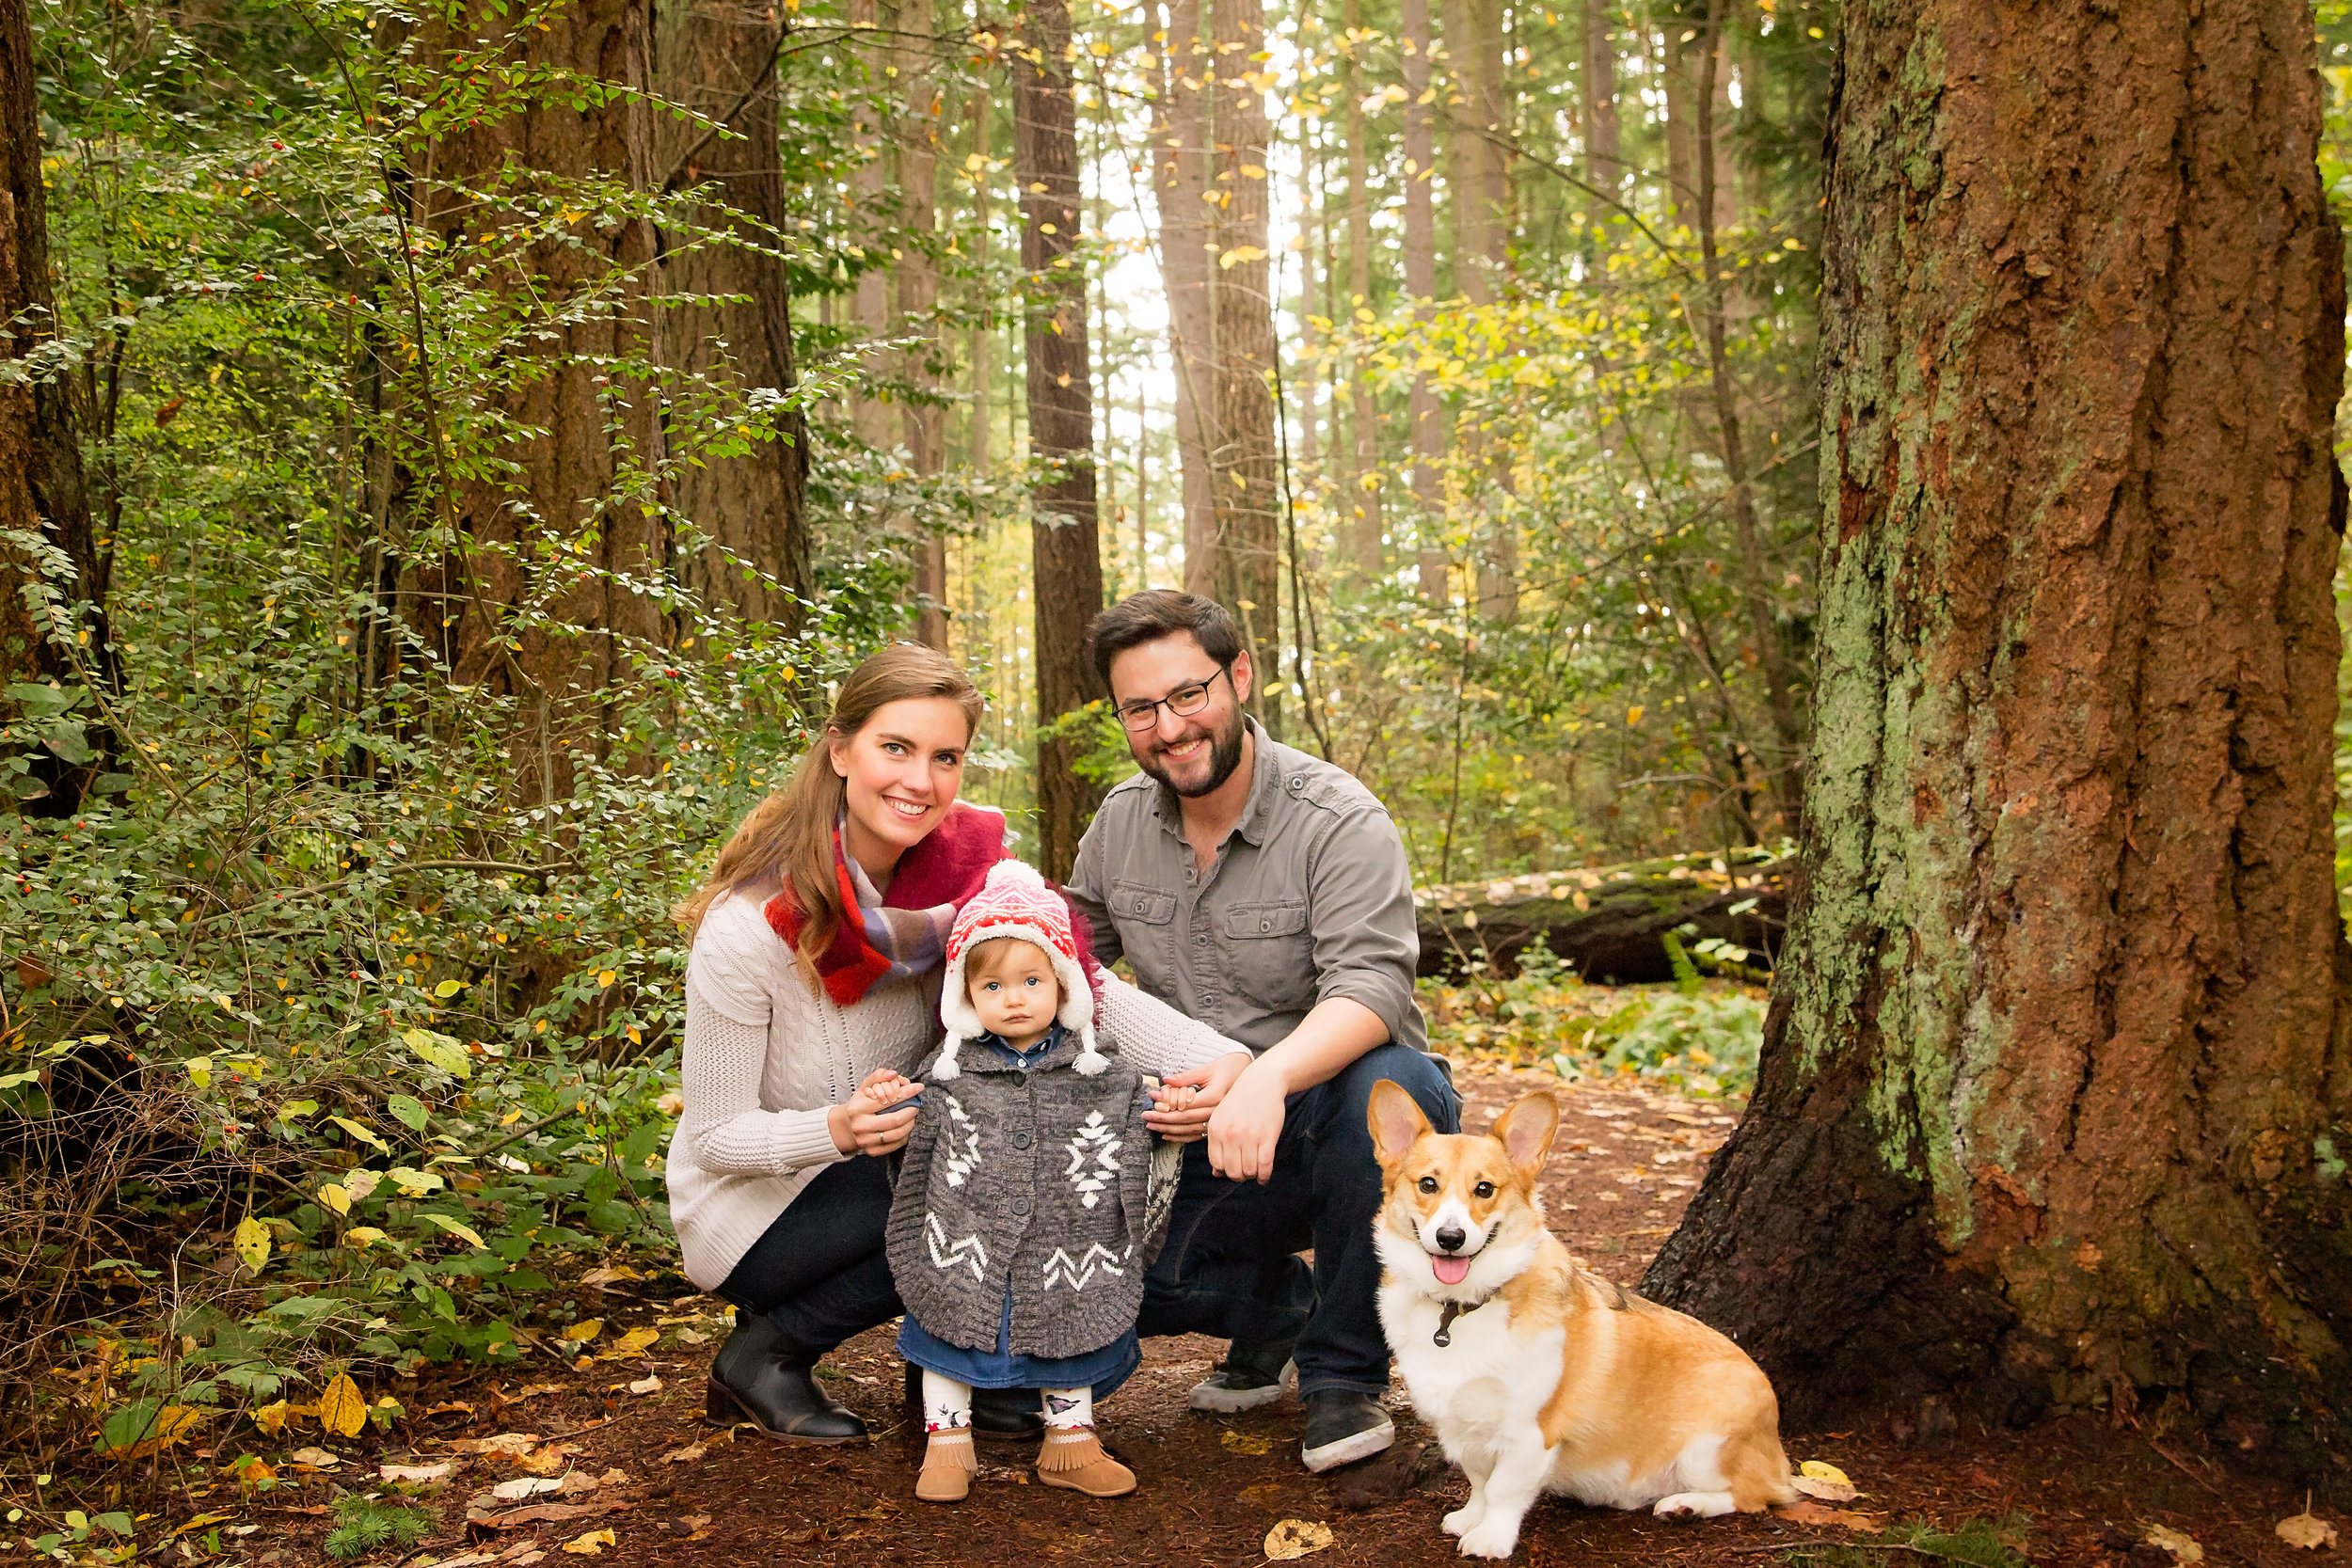 I think you'll agree this forest family shot is just adorable and one of my favorites from the session